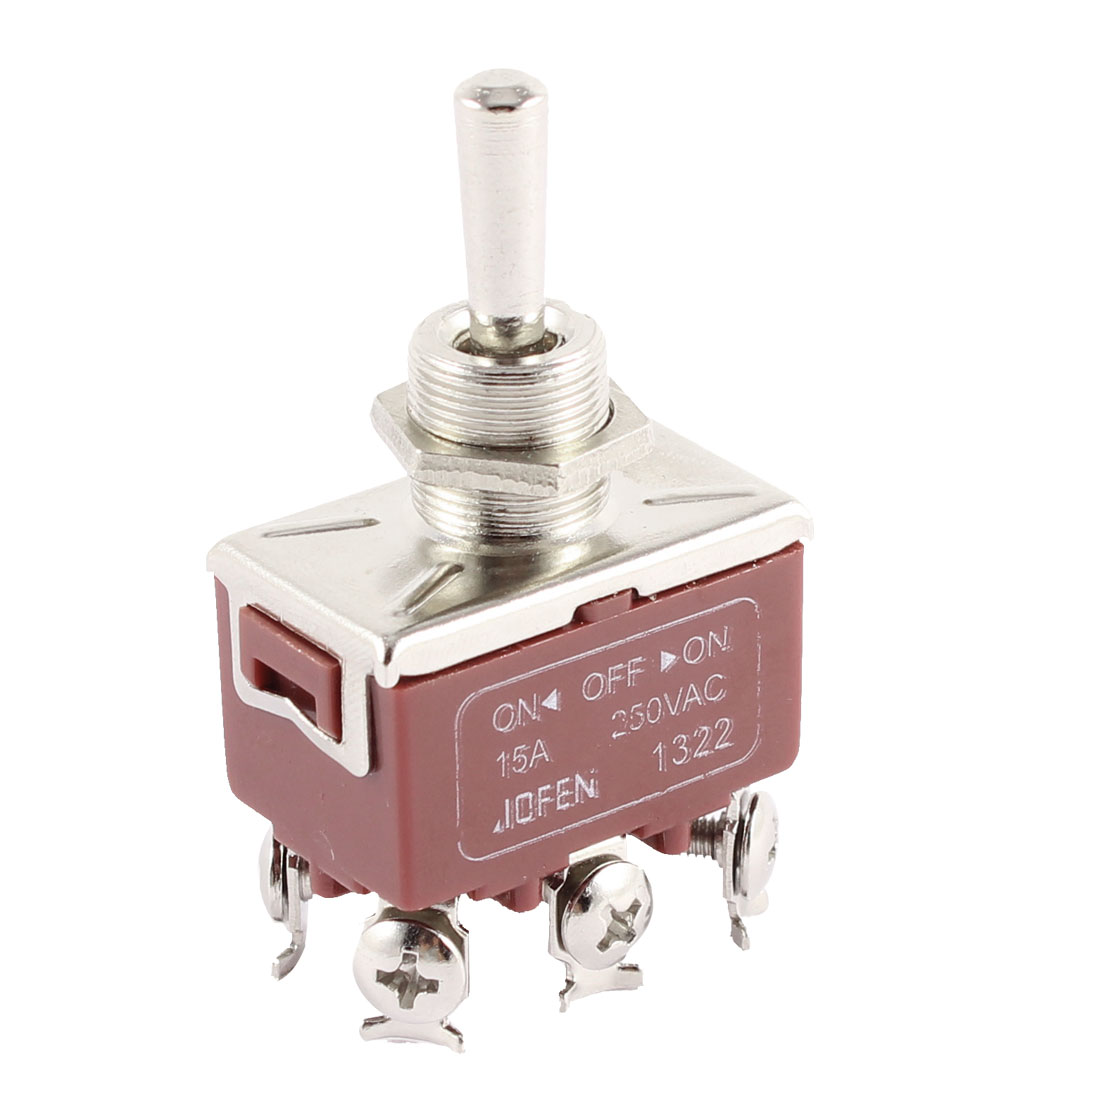 AC 250V 15A 6 Screw Terminals ON-OFF-ON Control 12mm Panel Mount DPDT Latching Toggle Switch